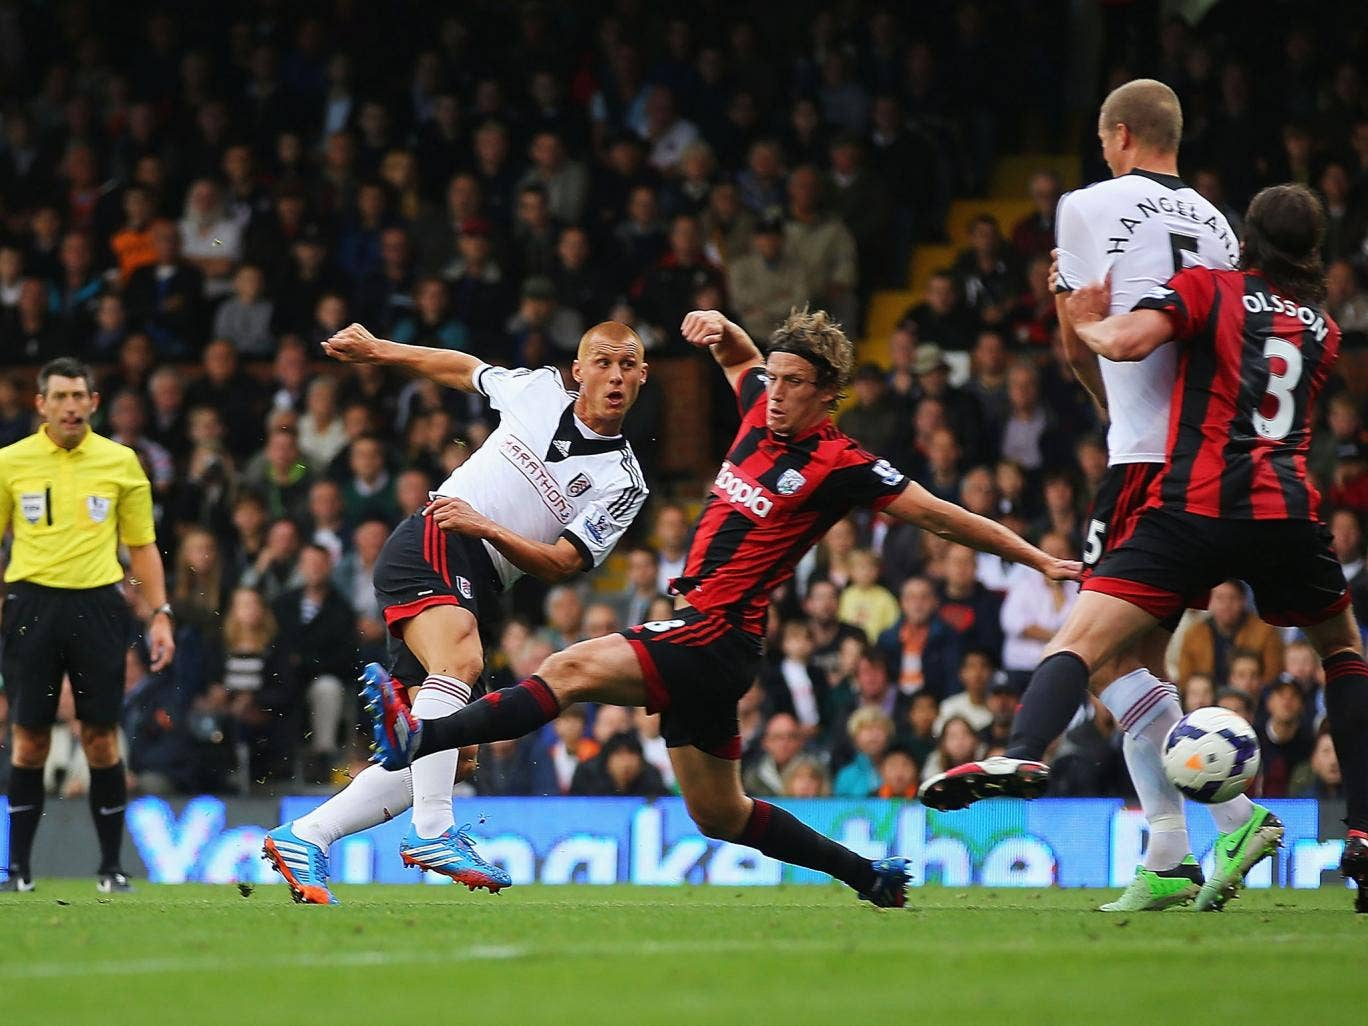 Steve Sidwell opens the scoring for Fulham against West Brom at Craven Cottage